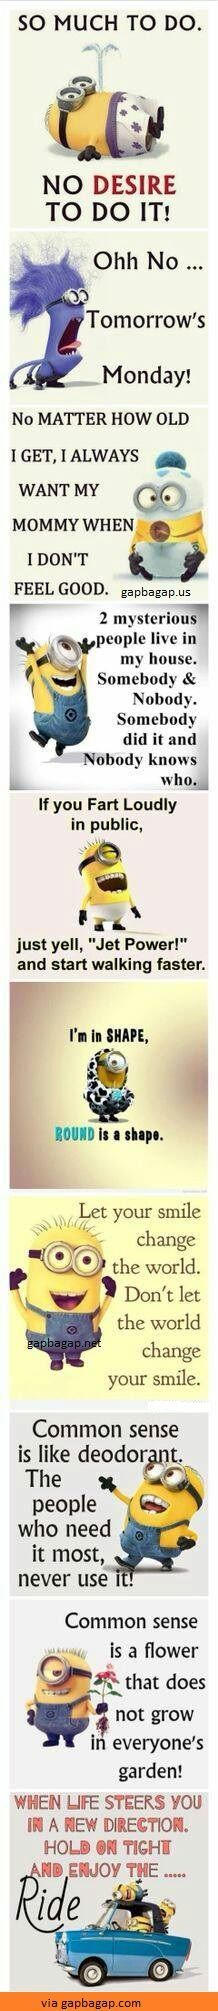 Top 10 Funny Memes By The #Minions - funny minion memes, funny minion quotes, Funny Quote, Minion Quote, Minion Quote Of The Day - Minion-Quotes.com